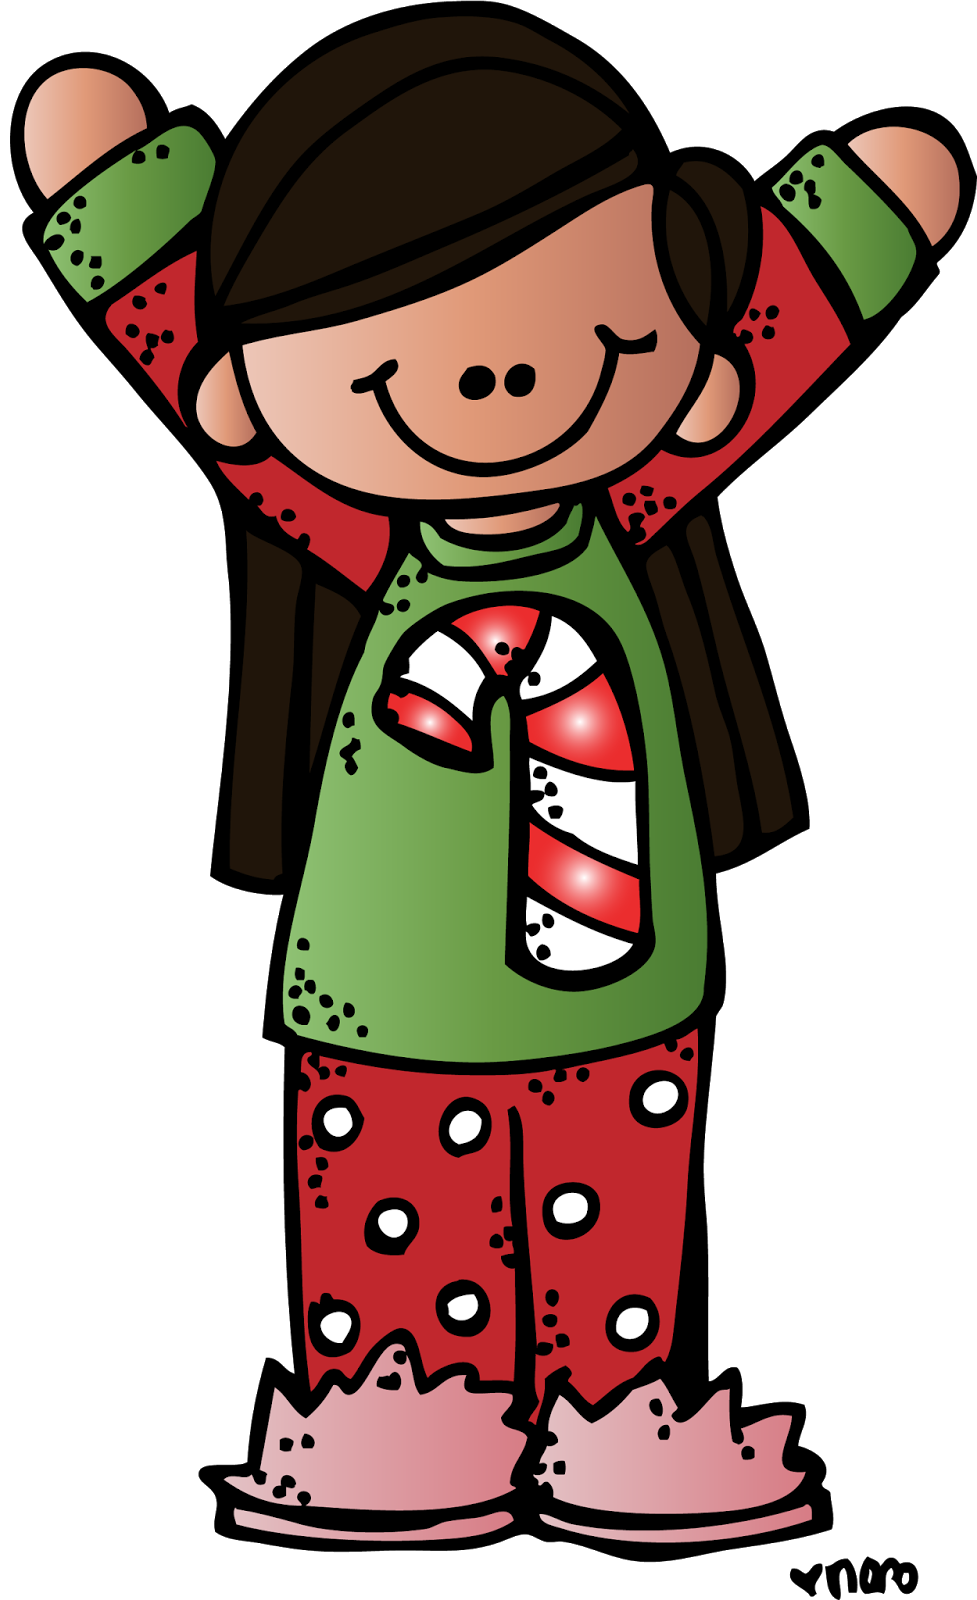 December clipart melonheadz. Illustrating google search mu